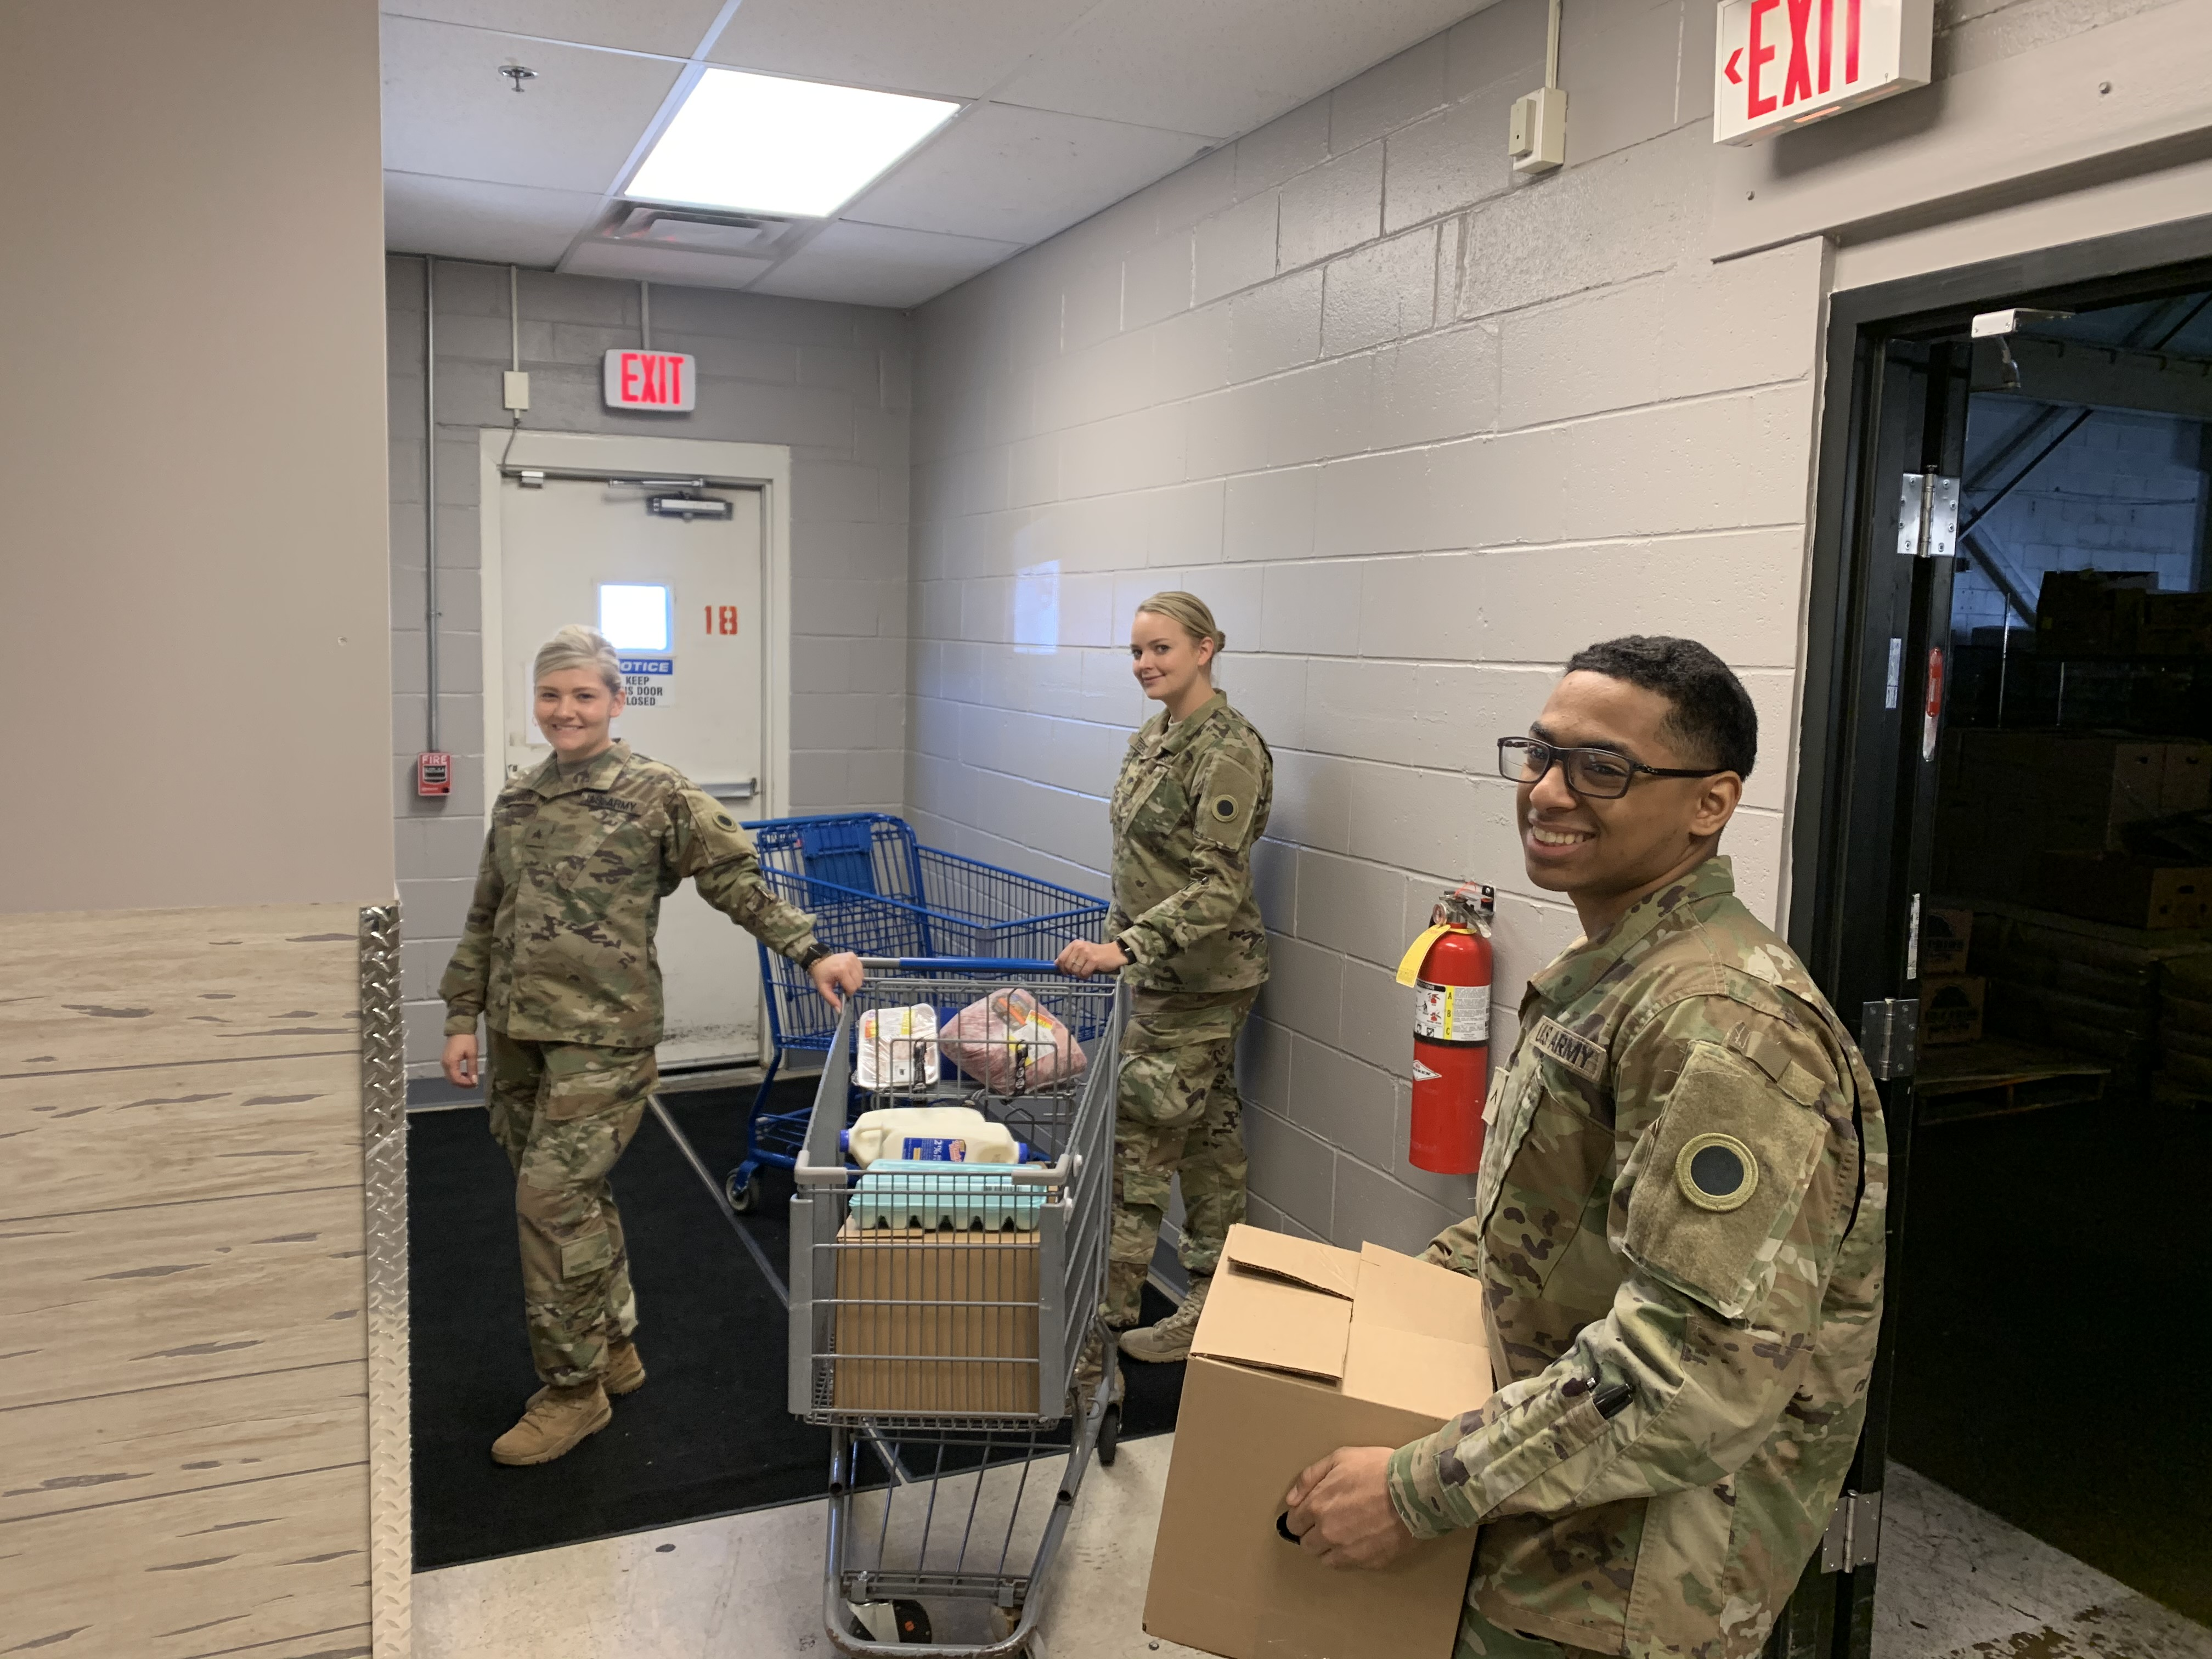 Soldiers pack carts in warehouse.